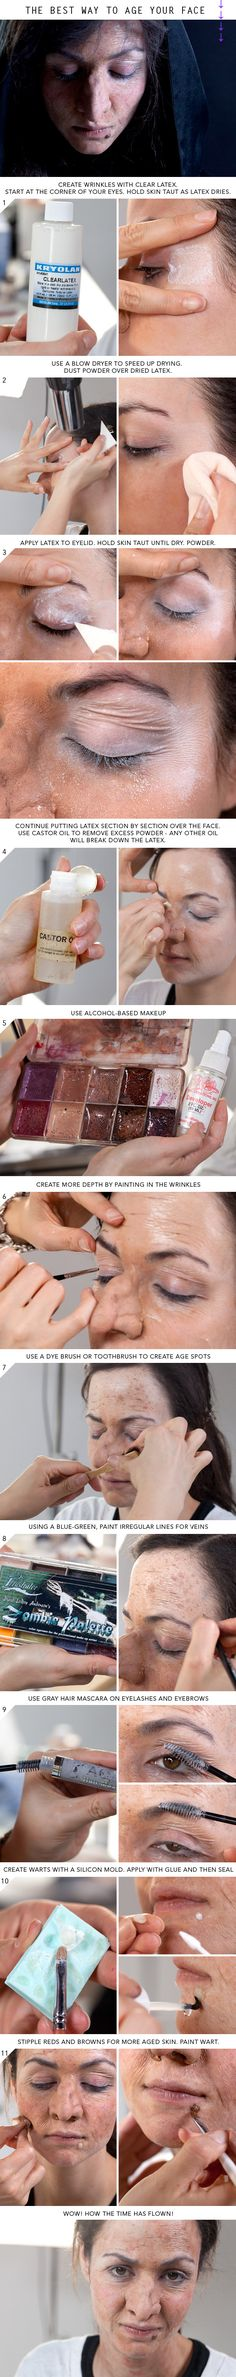 Halloween How-To: The Best Way to Age Your Face..... it's gonna hurt like the Dickens to get that latex off the eyelid, though.